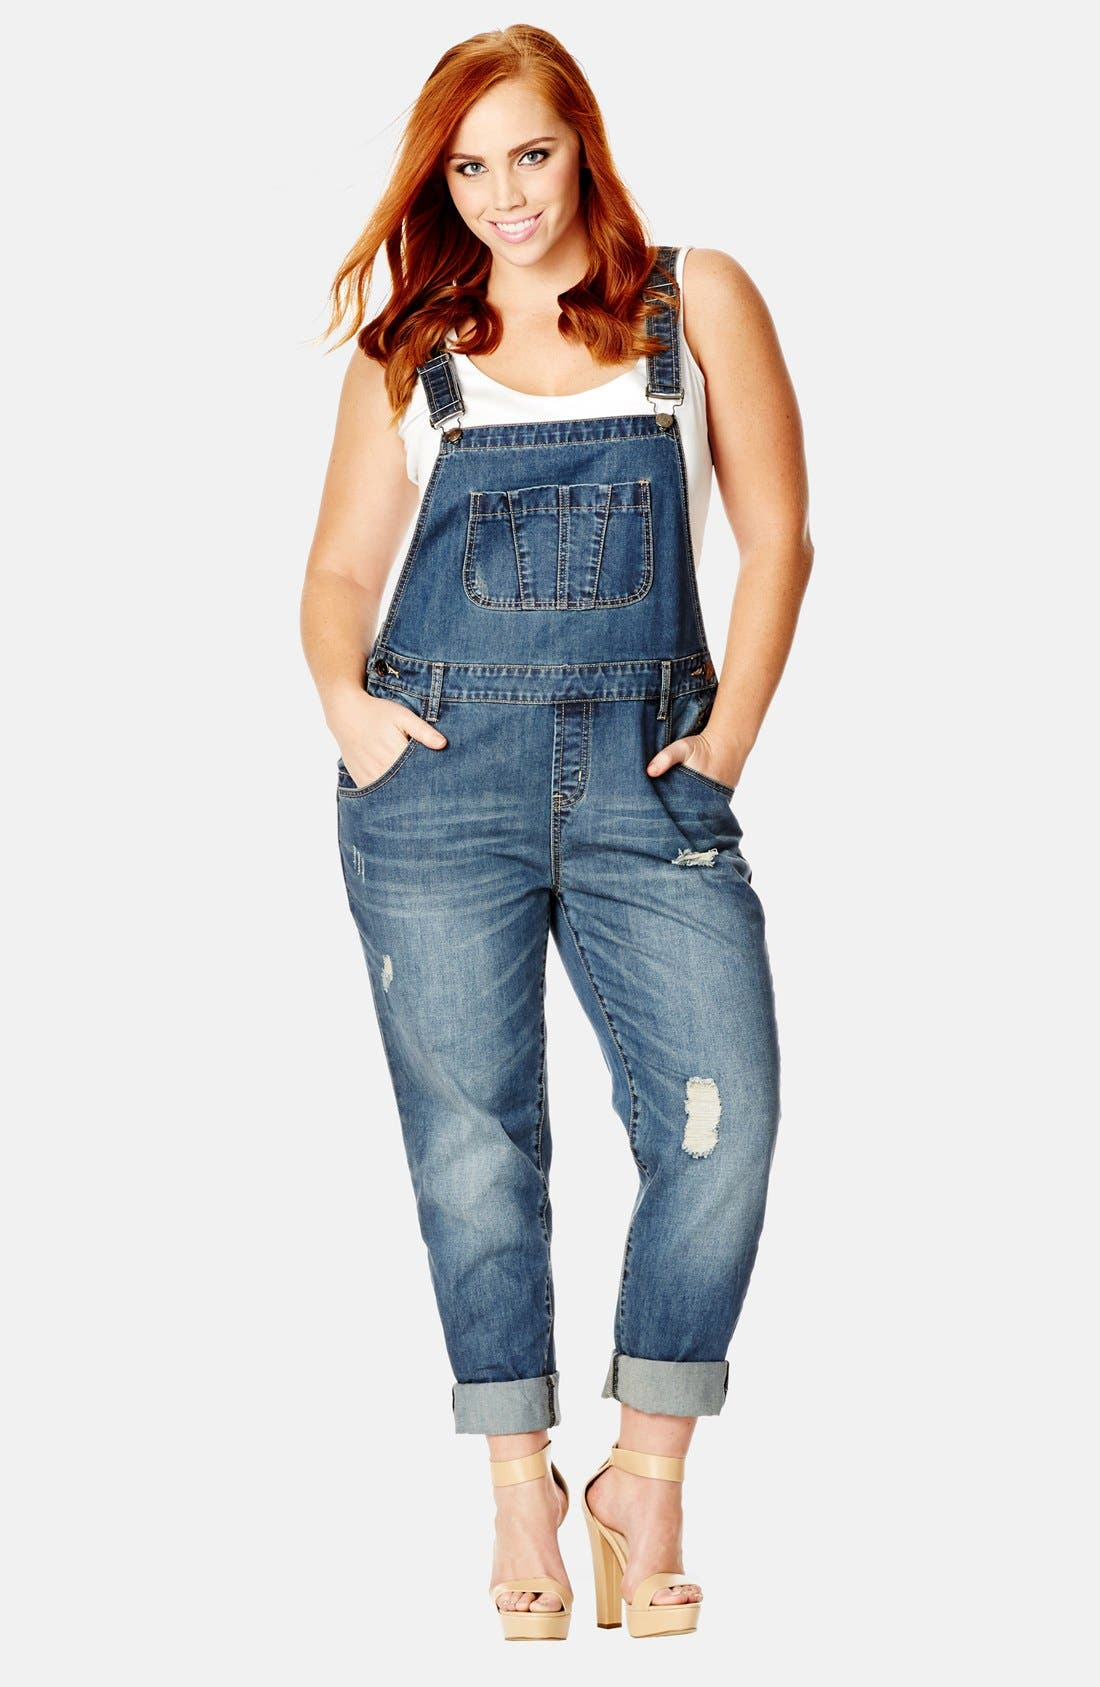 Main Image - City Chic 'Over It All' Distressed Denim Overalls (Plus Size)